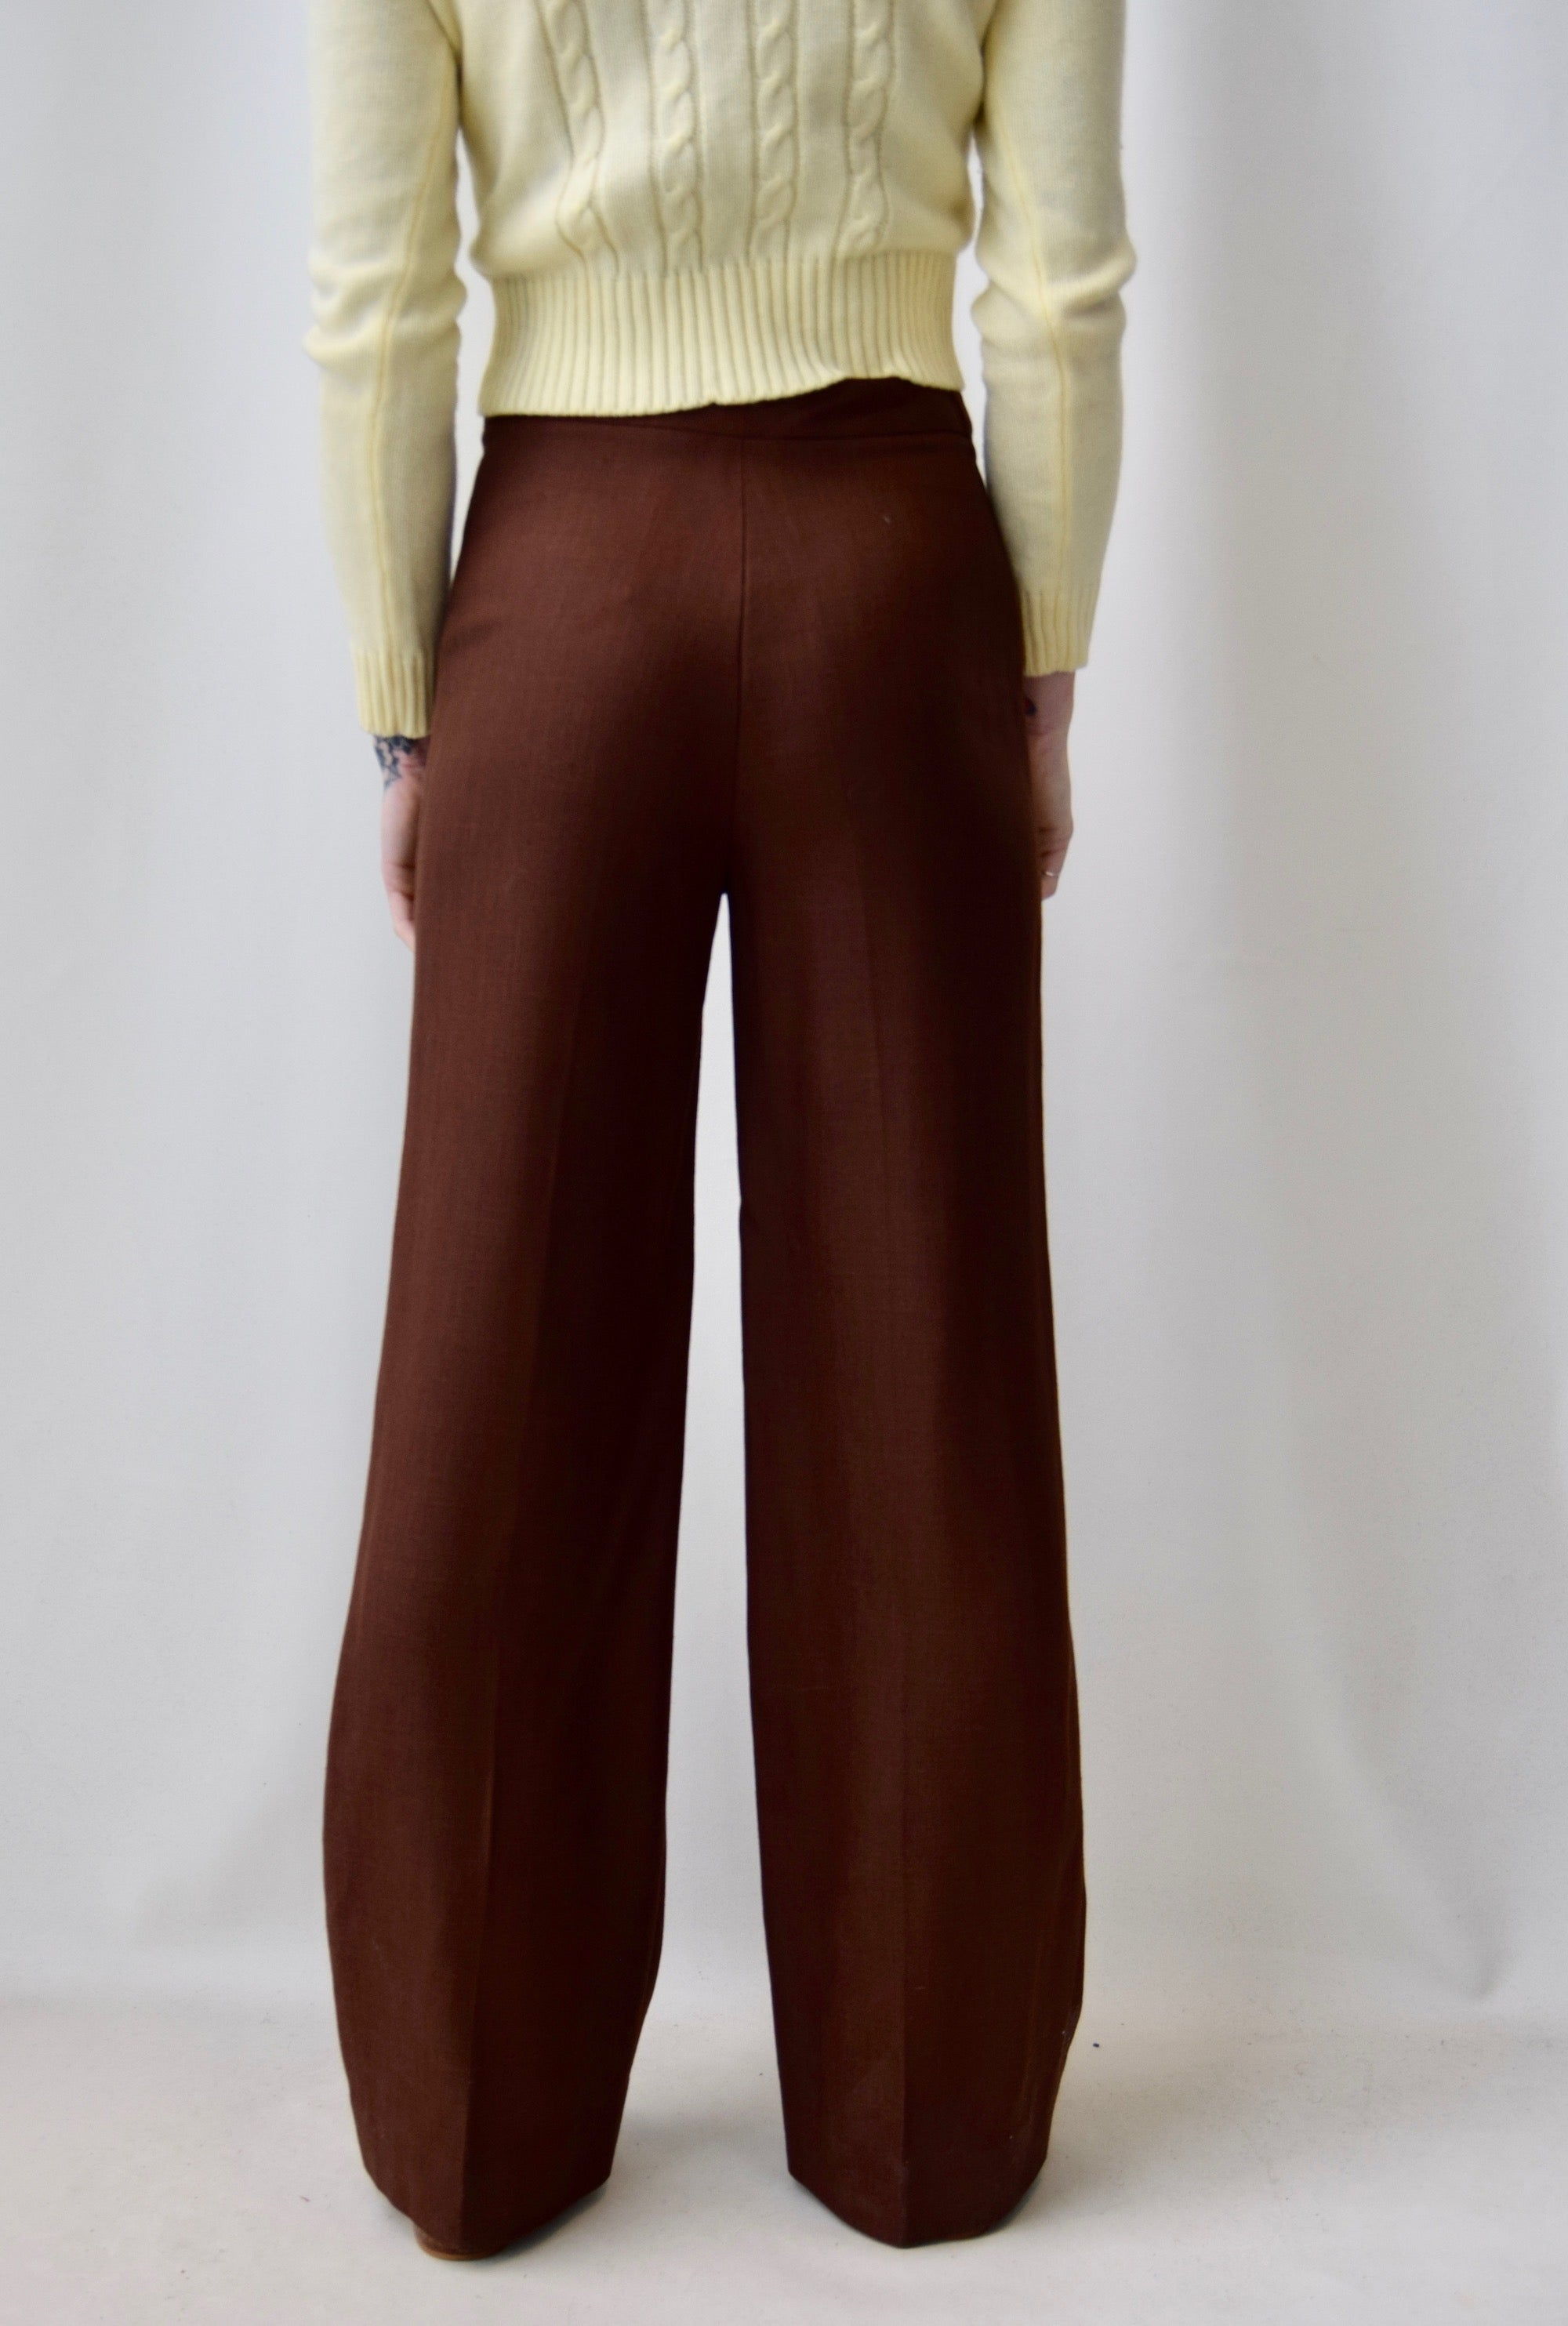 Seventies French Rayon Knit Trousers